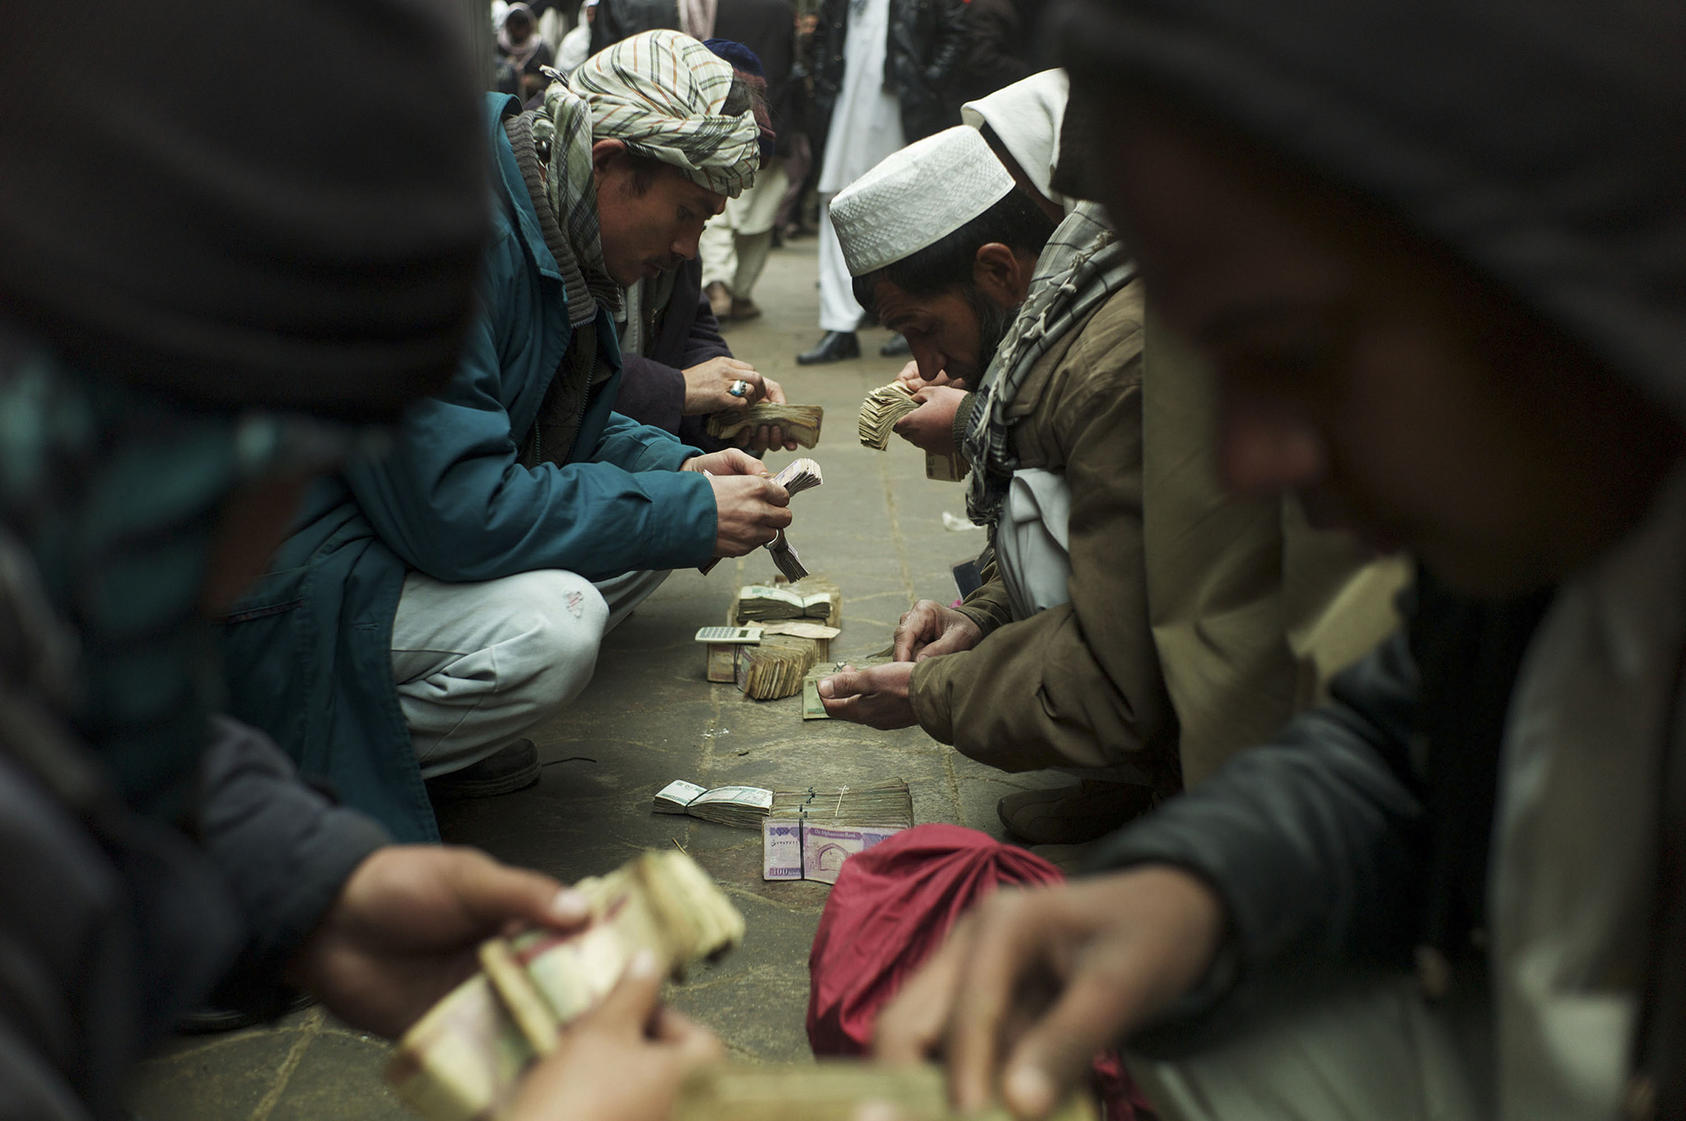 Men negotiate money exchanges at a market in Kabul, on Jan. 29, 2011. (Michael Kamber/The New York Times)